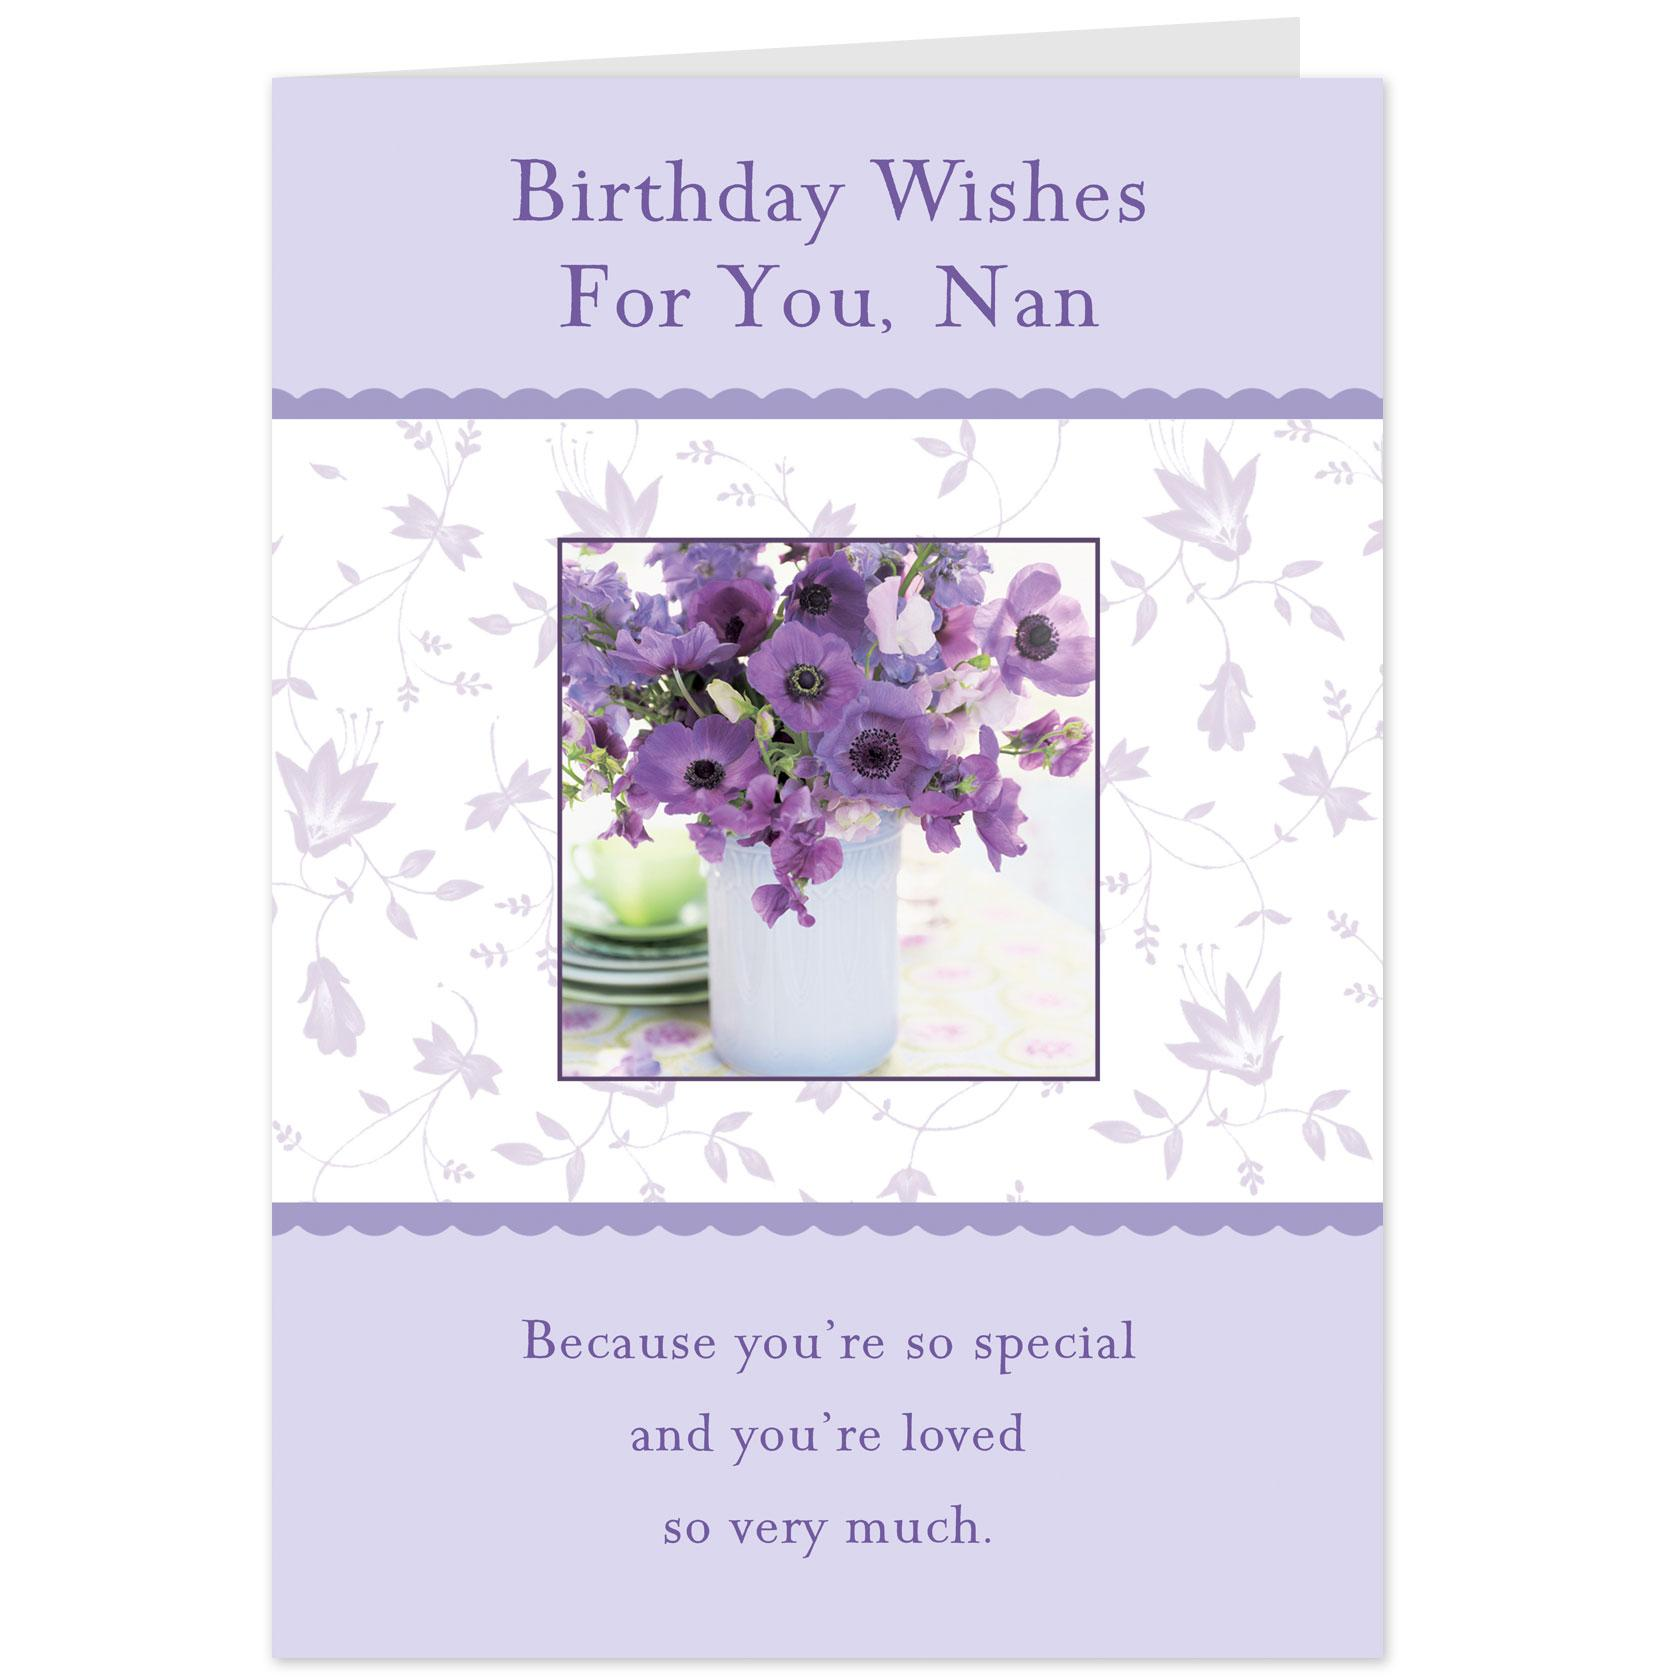 Birthday Card Sayings Hallmark : Hallmark birthday quotes for her quotesgram